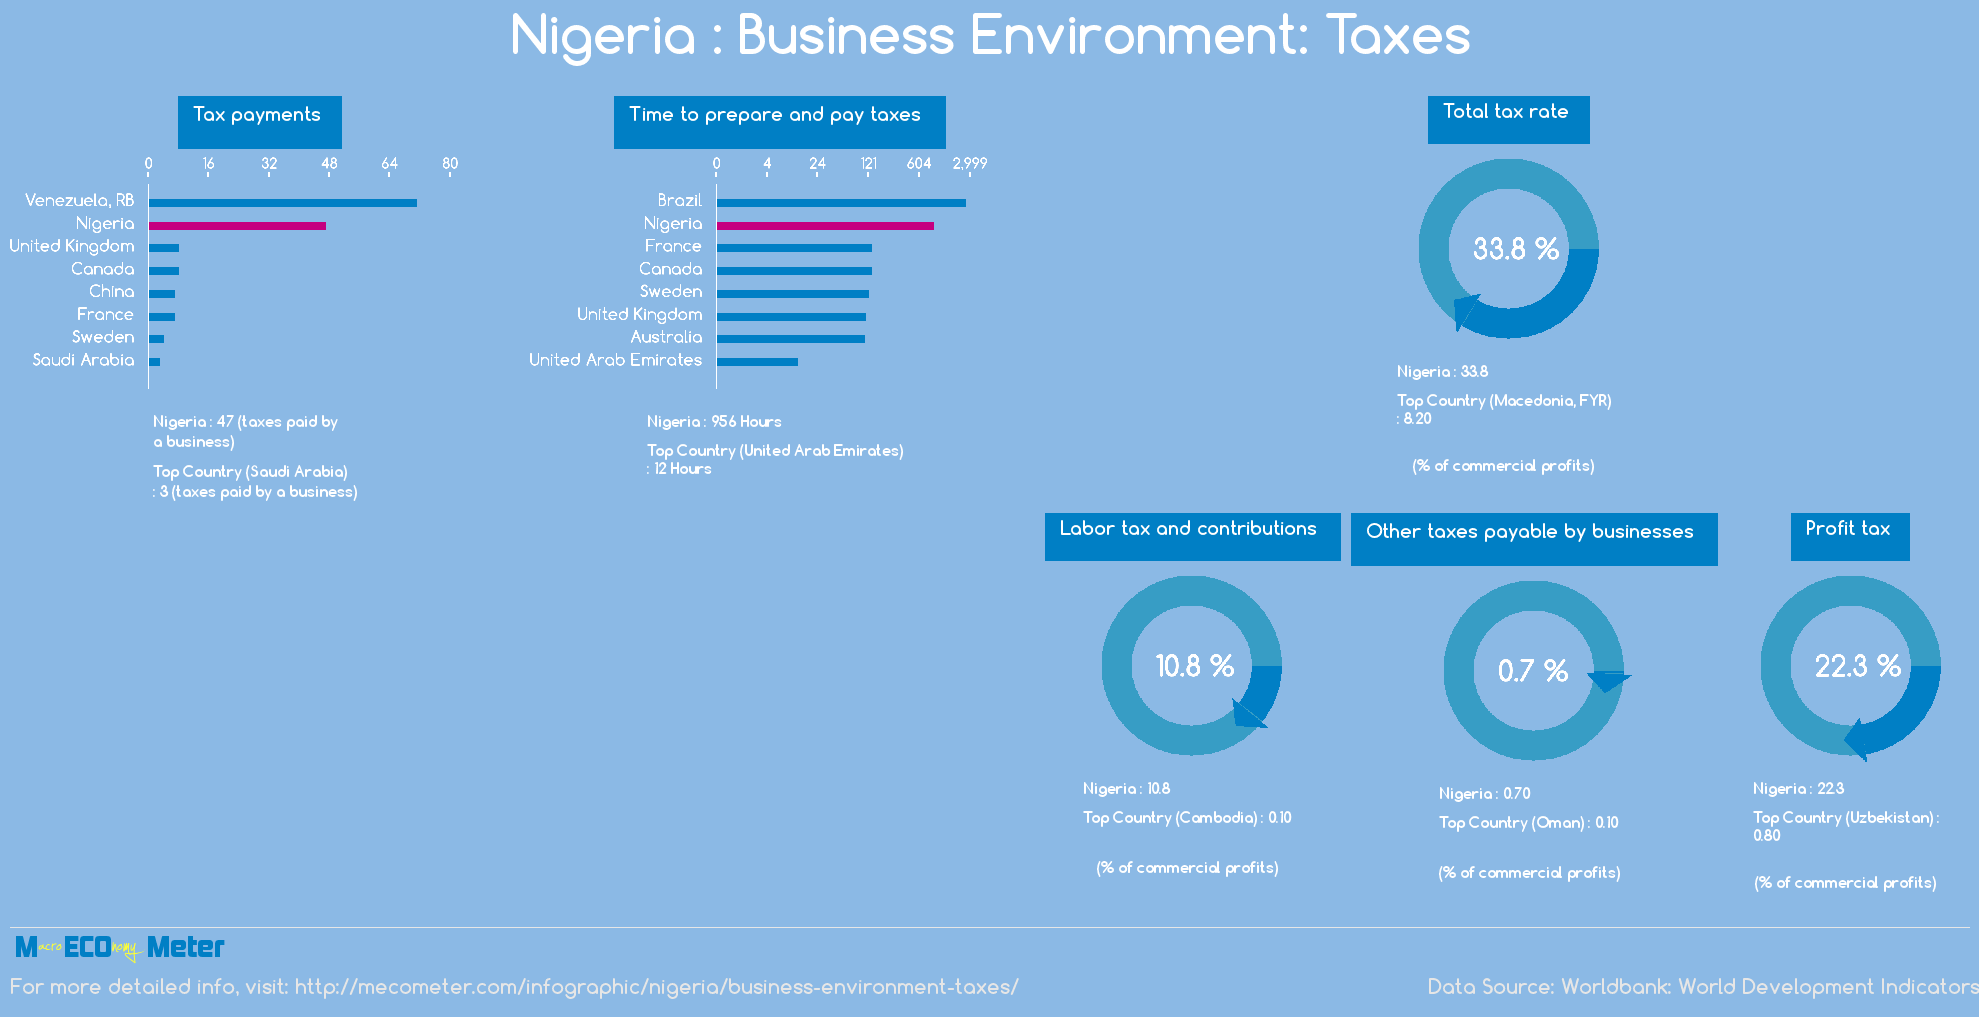 Nigeria : Business Environment: Taxes